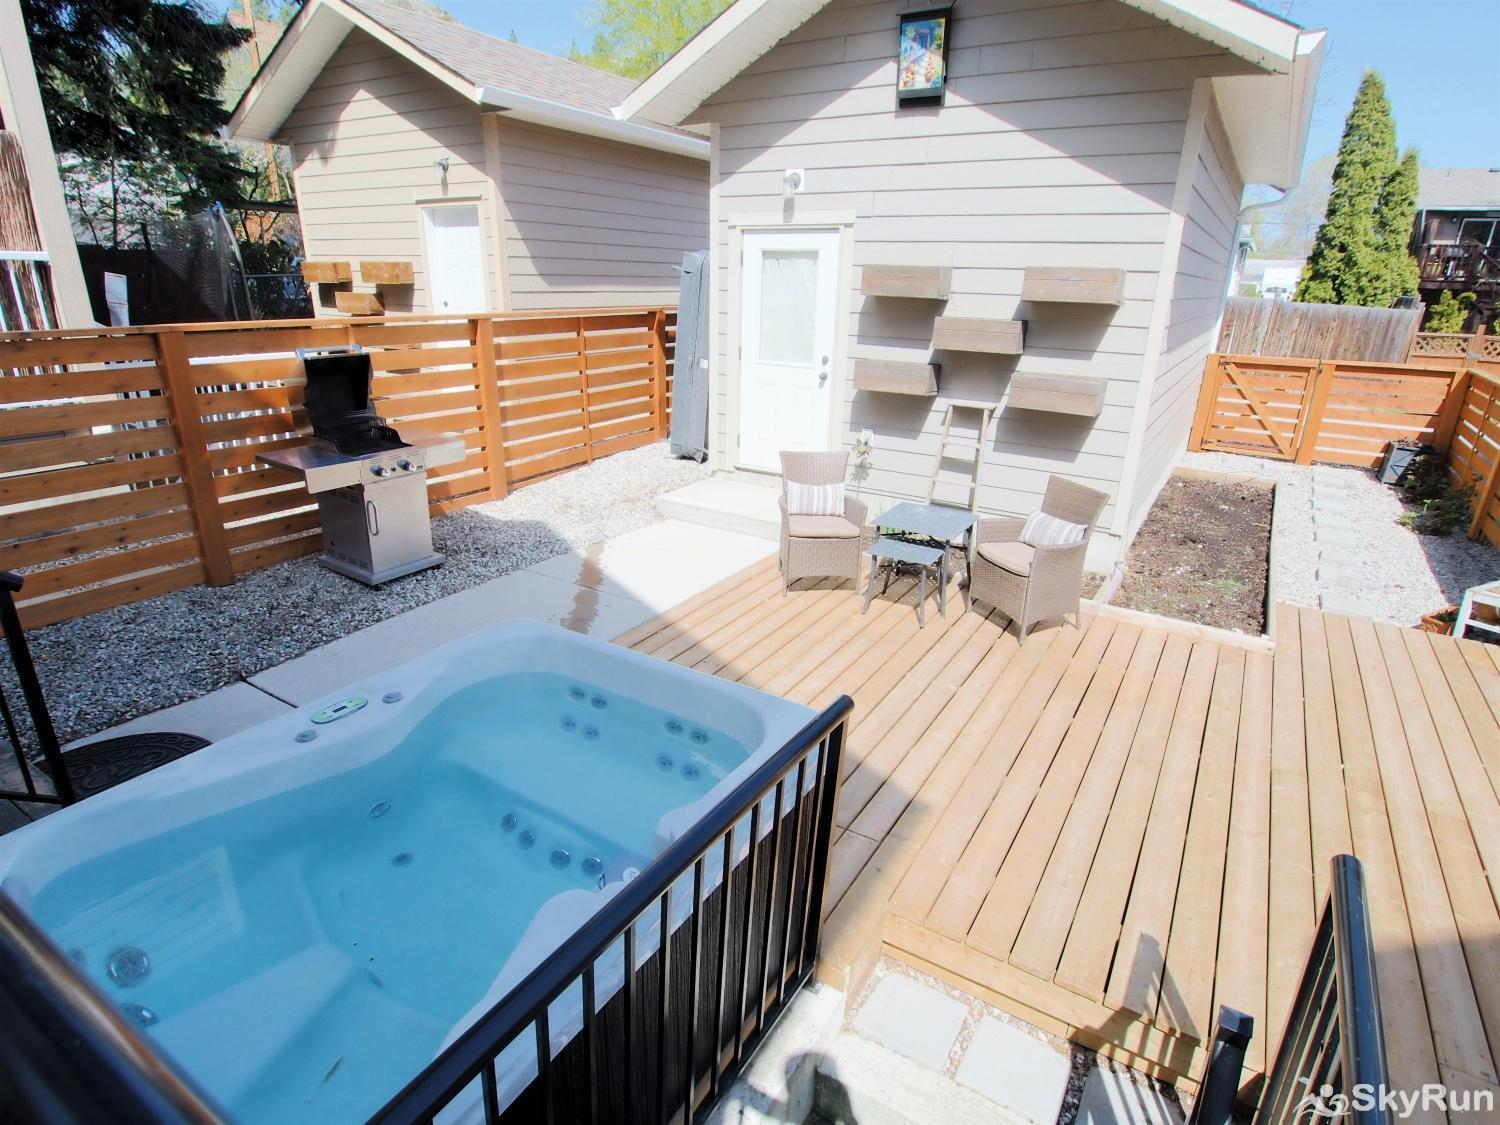 Old Summerland 4 bedroom townhouse Private Hot tub and back yard patio